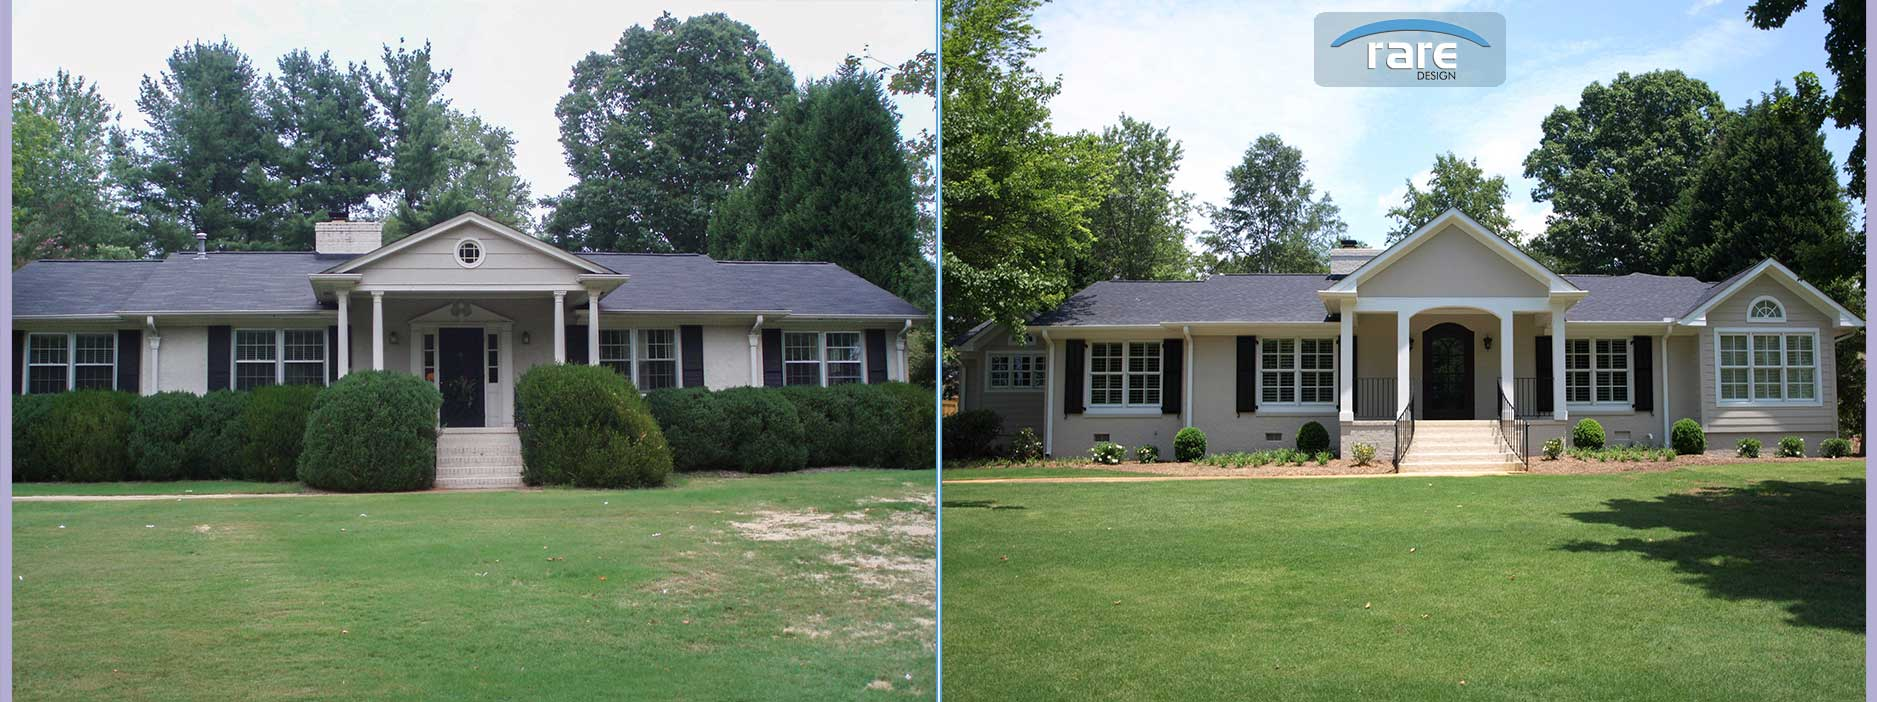 Greenville home remodeling raredesign inc for Before and after home exteriors remodels